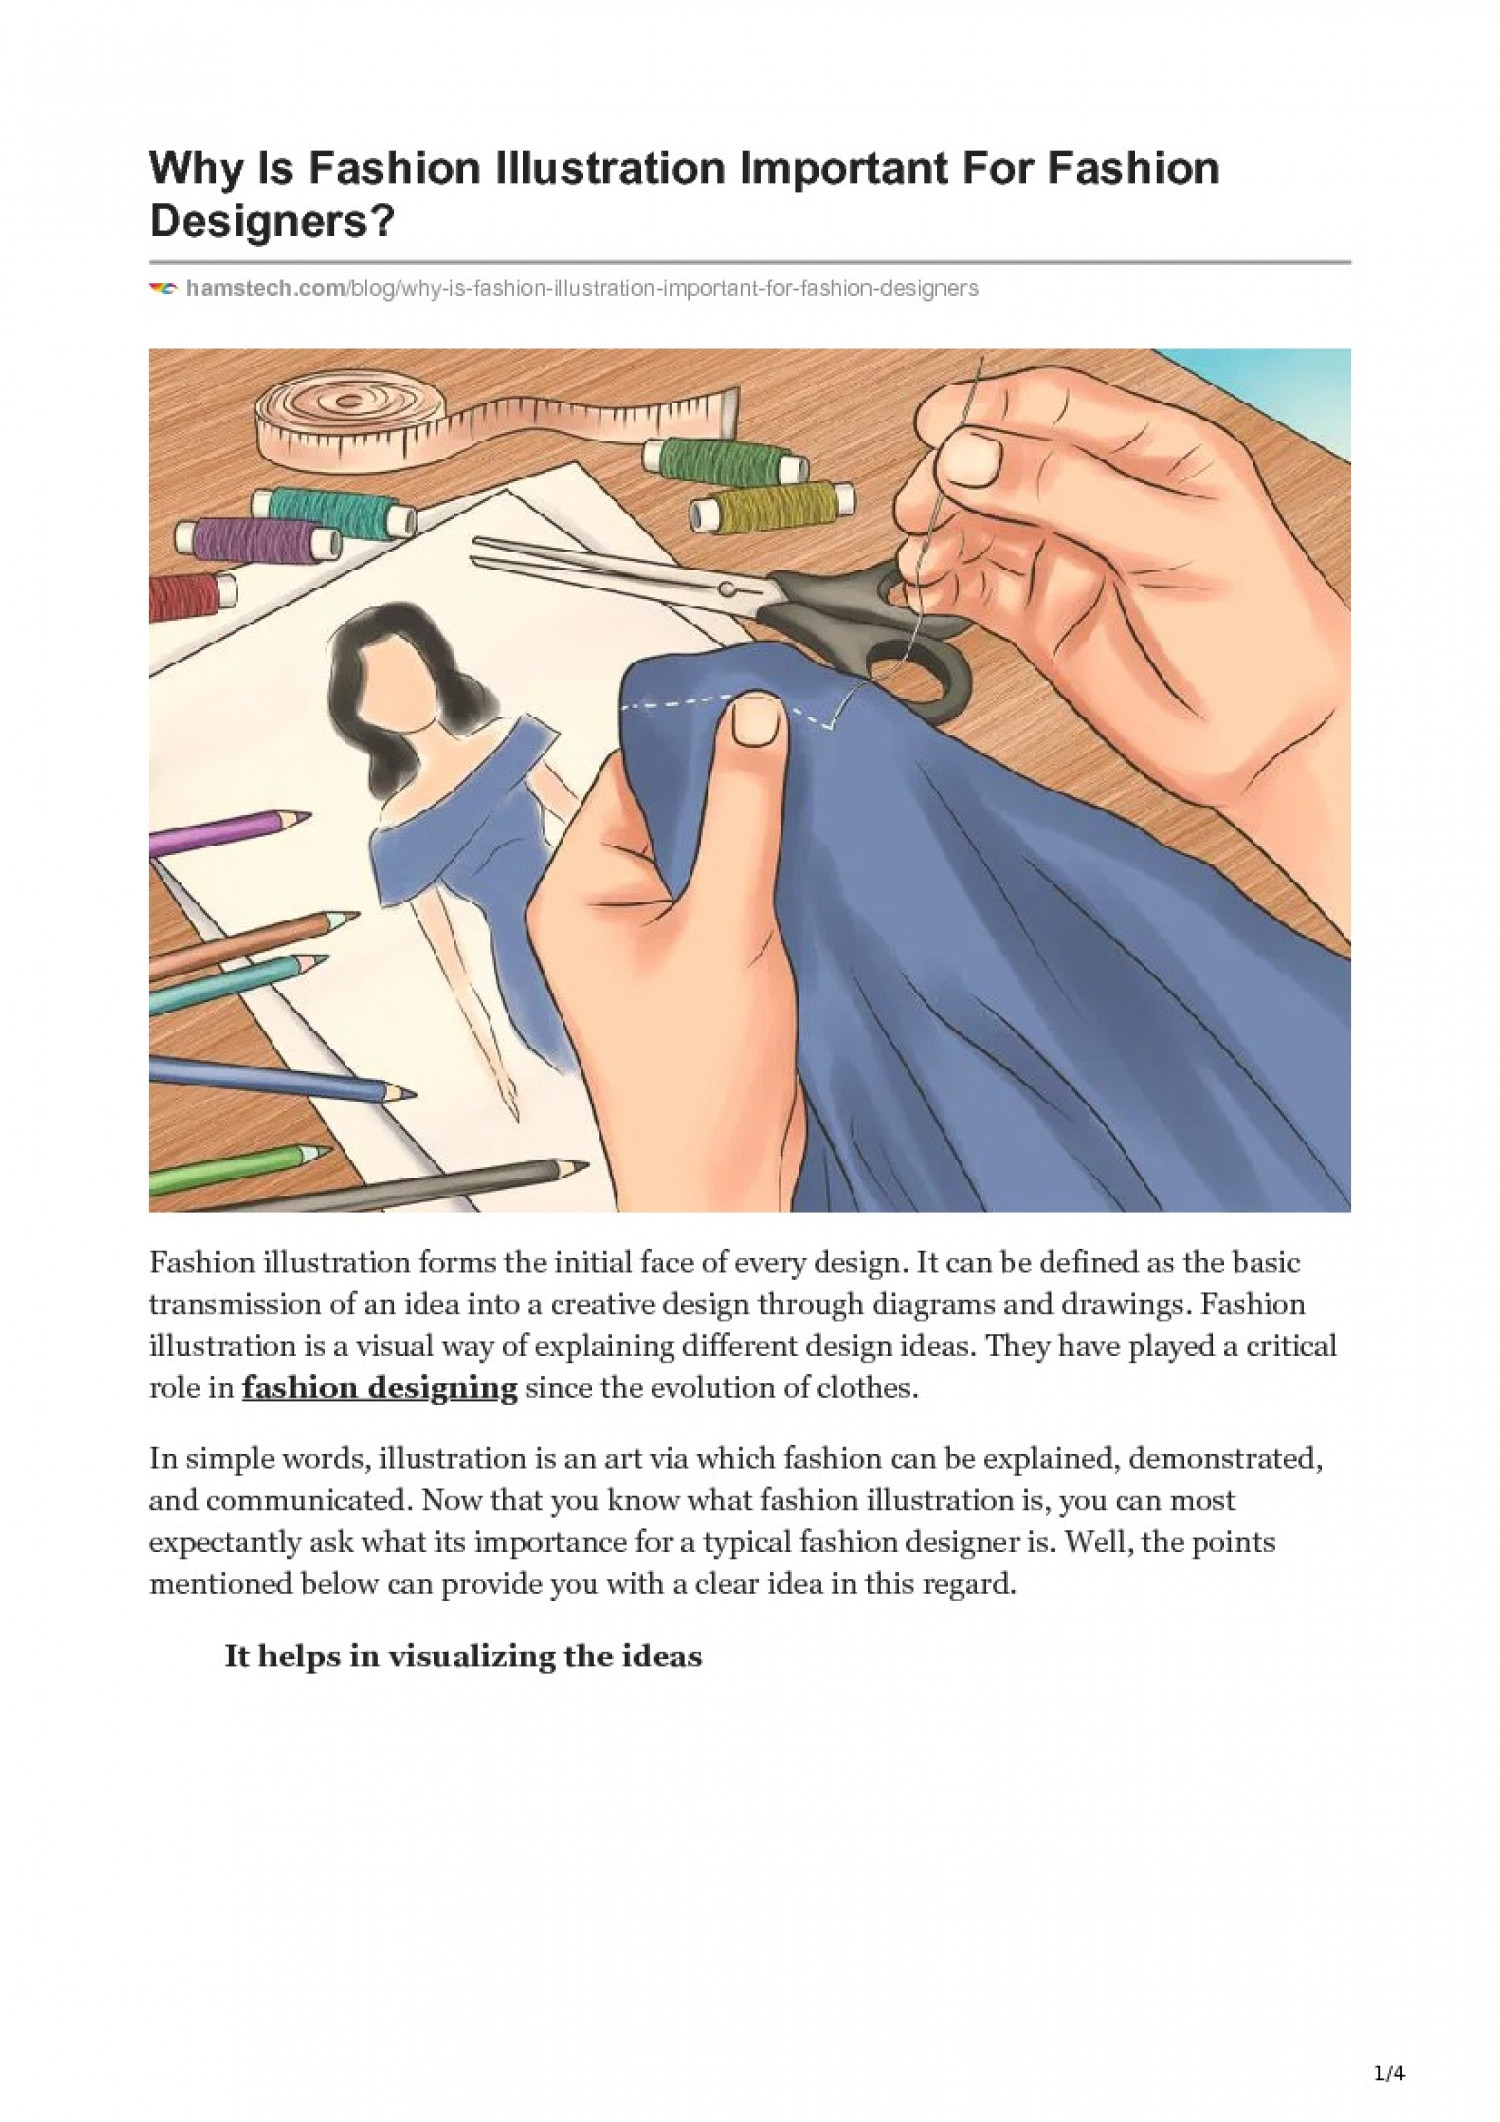 WHY IS FASHION ILLUSTRATION IMPORTANT FOR FASHION DESIGNERS? Infographic